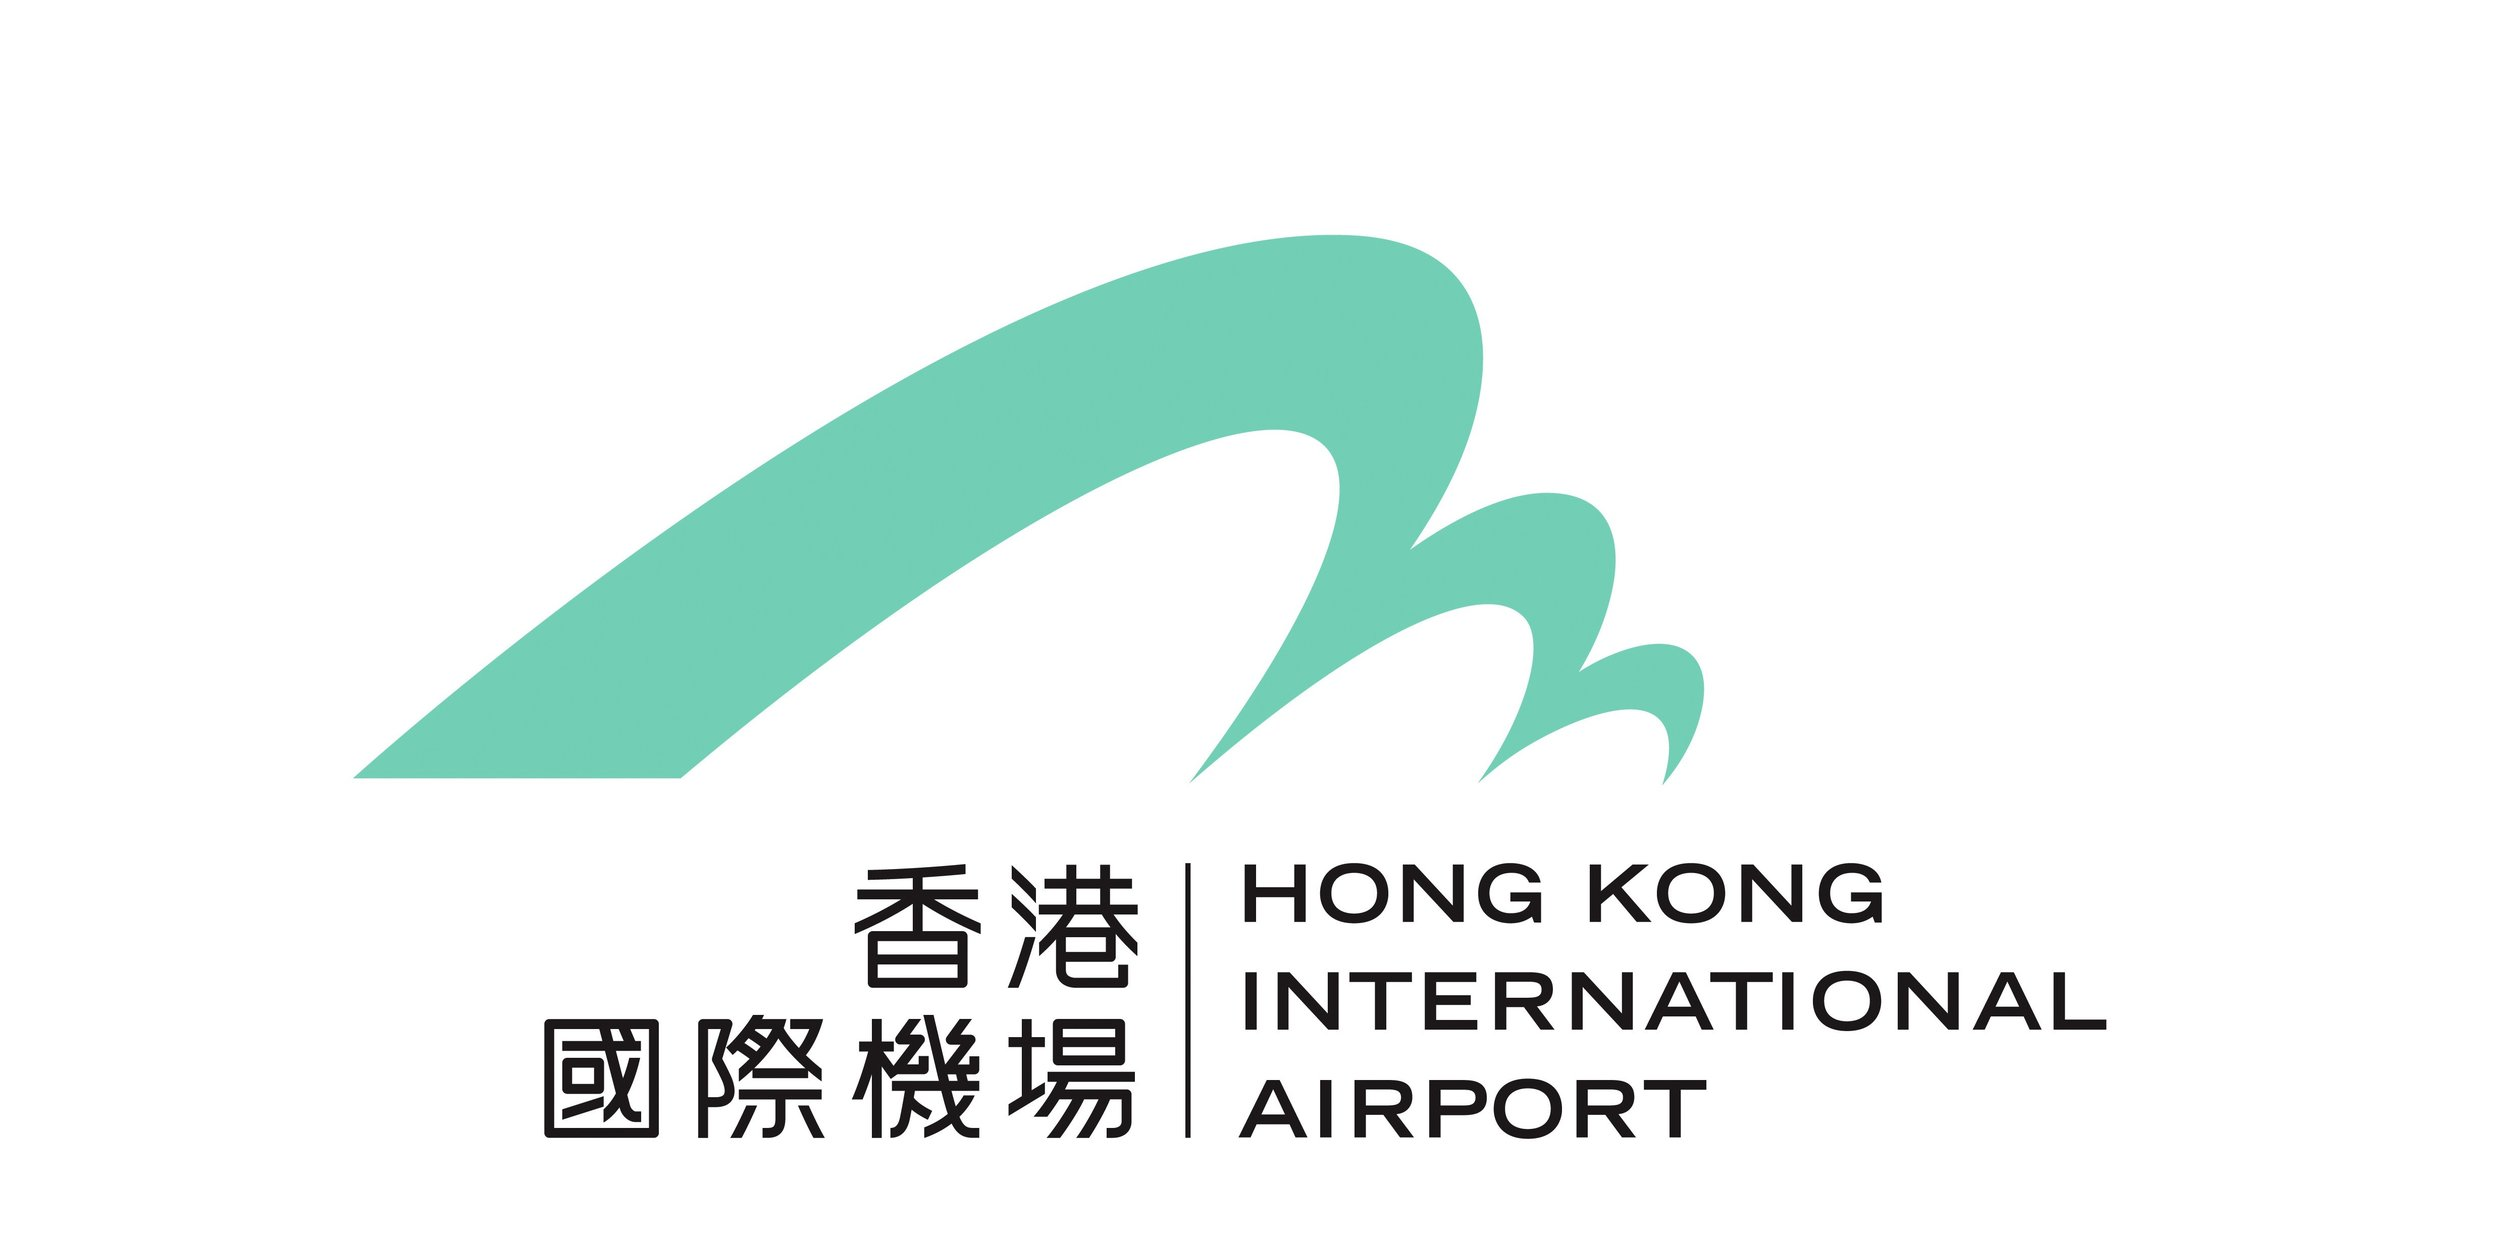 HK_Airport_New_Logo.jpg